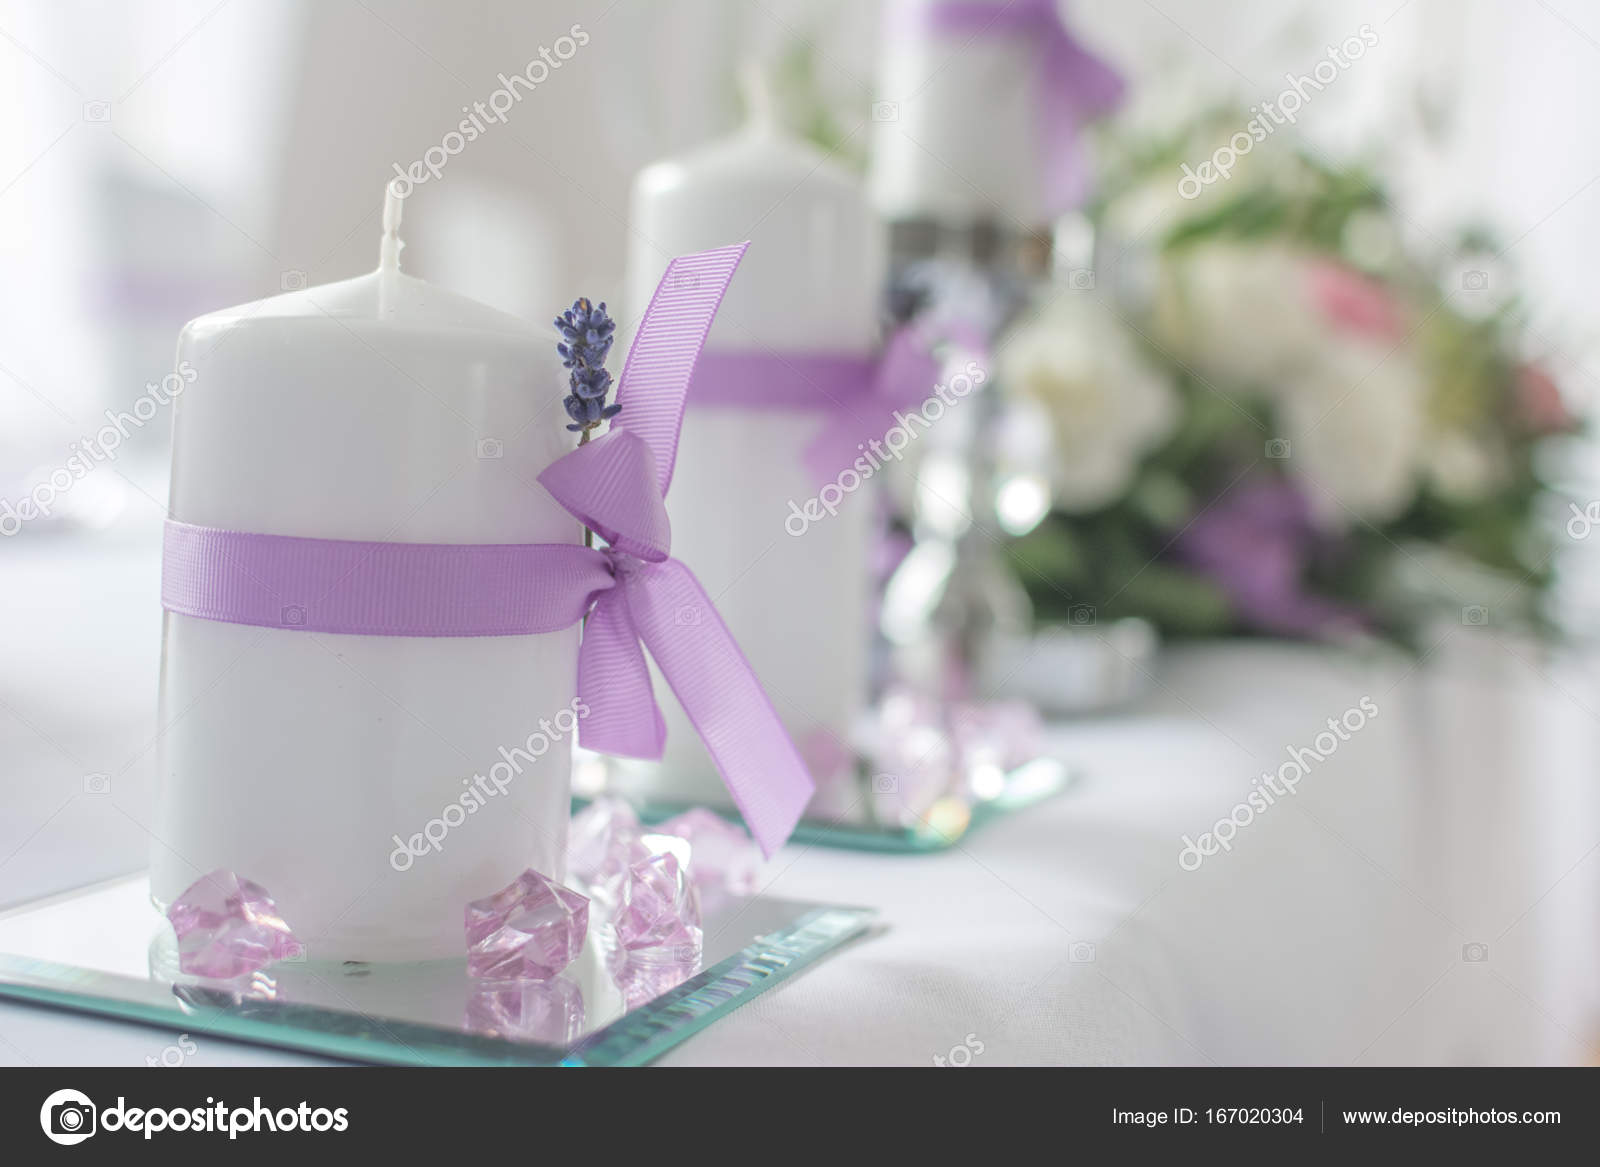 Wedding decoration candles and flowers in a background blur wedding decoration candles and flowers in a background blur fotografia de stock junglespirit Choice Image